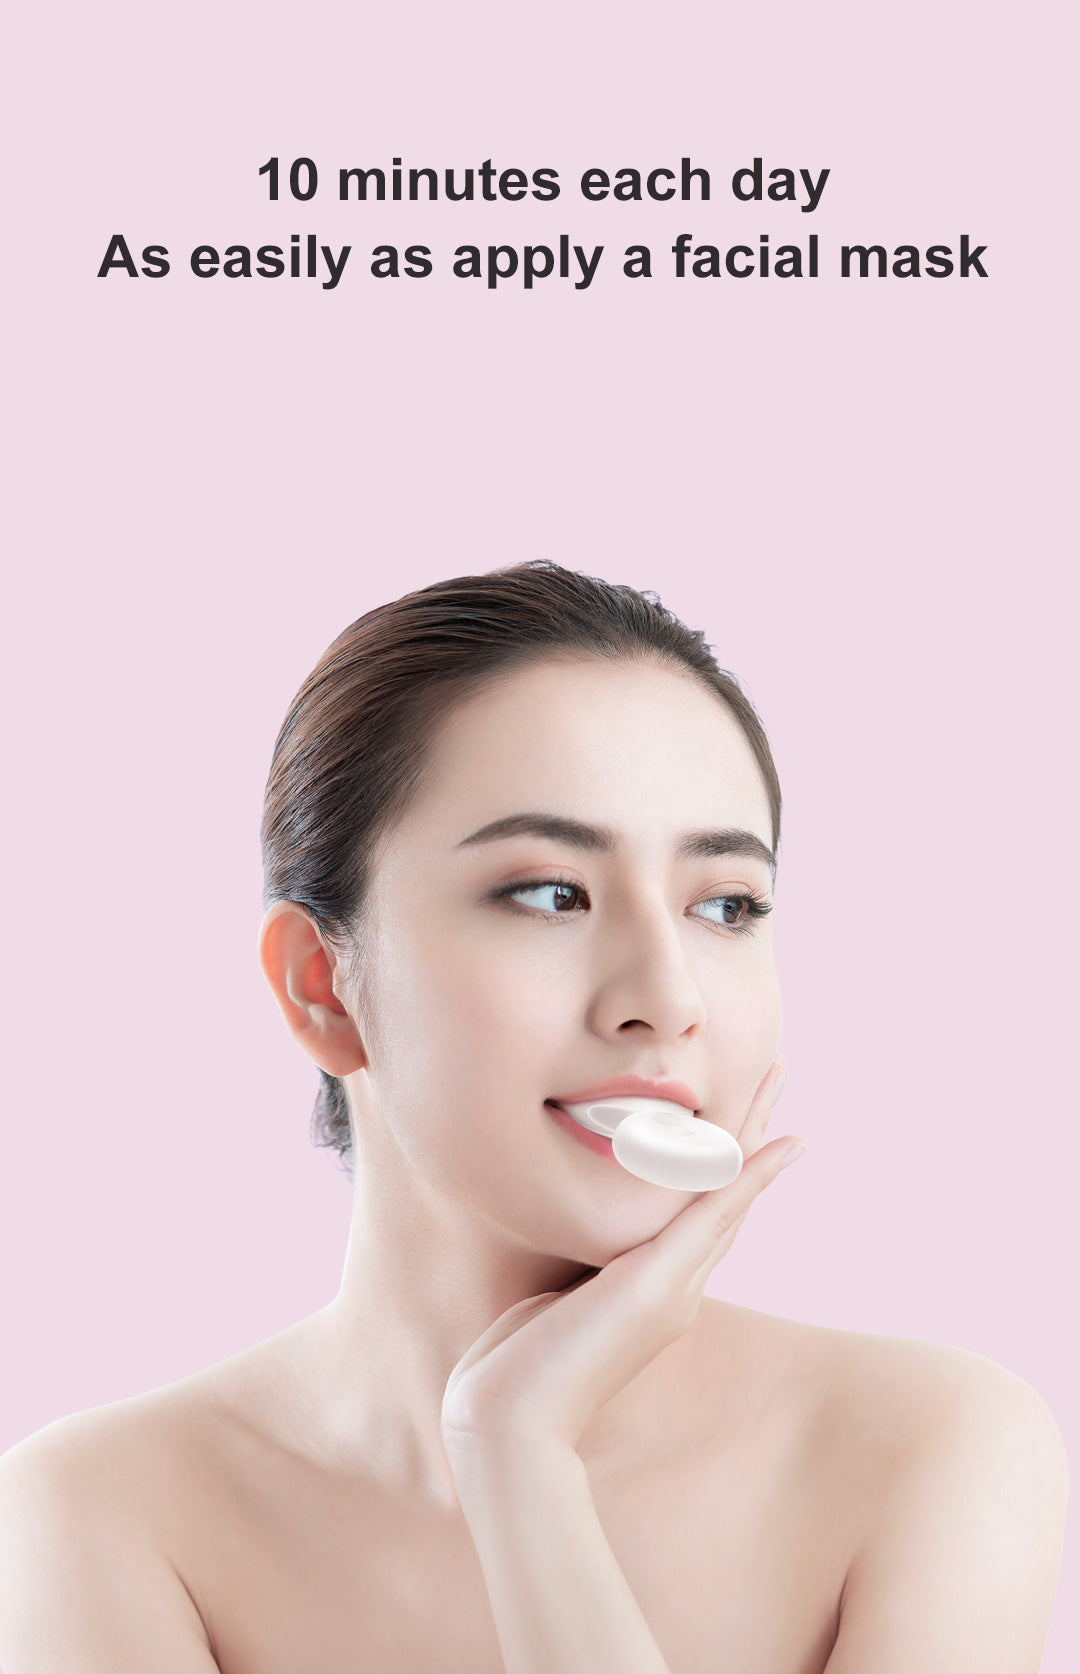 DR.BEI W7 Dental Whitening Kit Xiaomi Youpin DR.BEI W7 Dental Teeth Whitening Equipment Sonic Acoustic Oral Care Beautifier IPX7 Waterproof Tooth Whitening Cleaning Tools